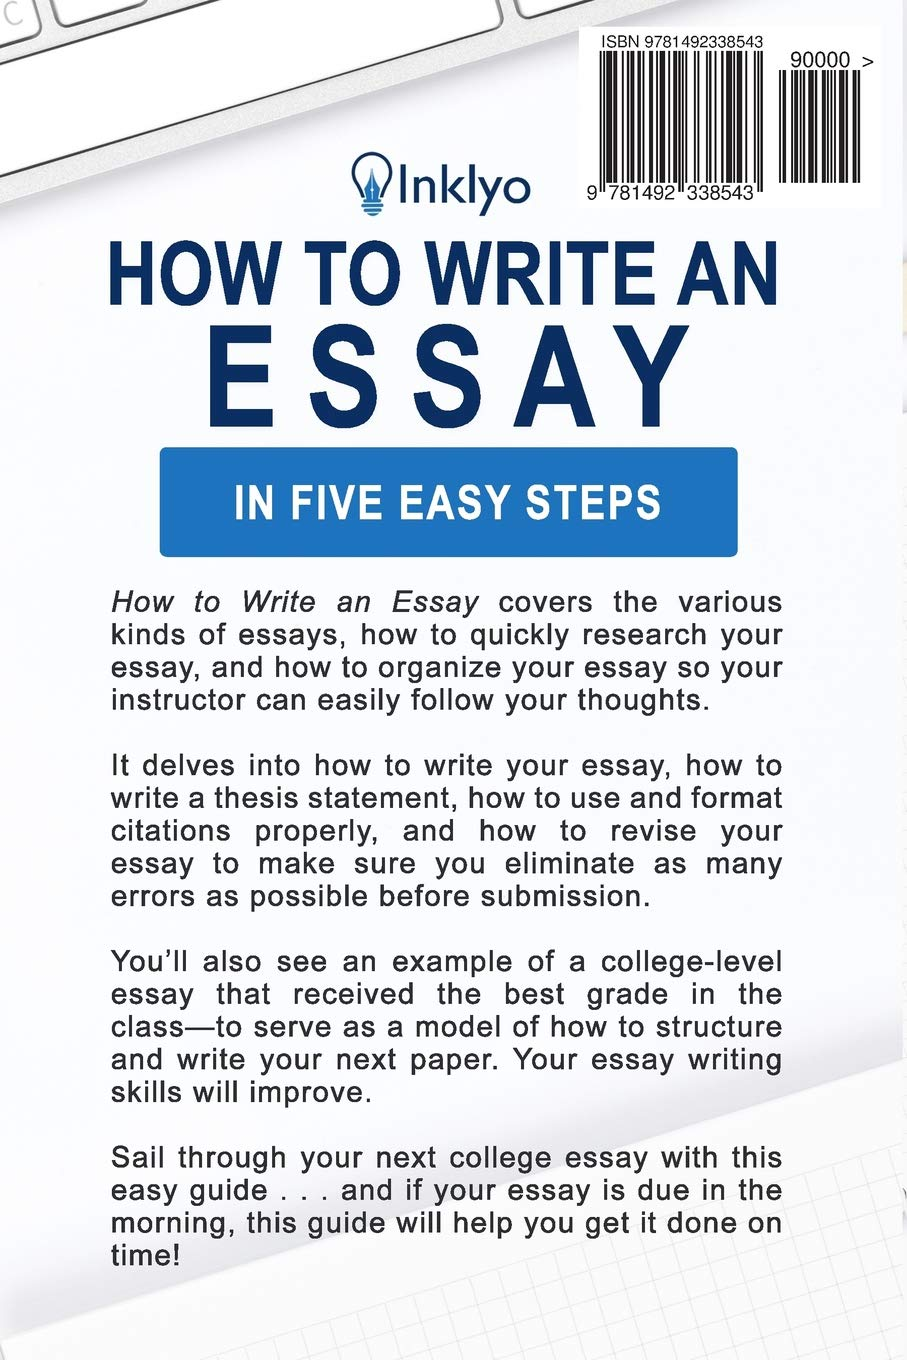 003 71v7ckw5pll Essay Example How To Amazing Write About Yourself An For A Job Interview Titles In Paper Full